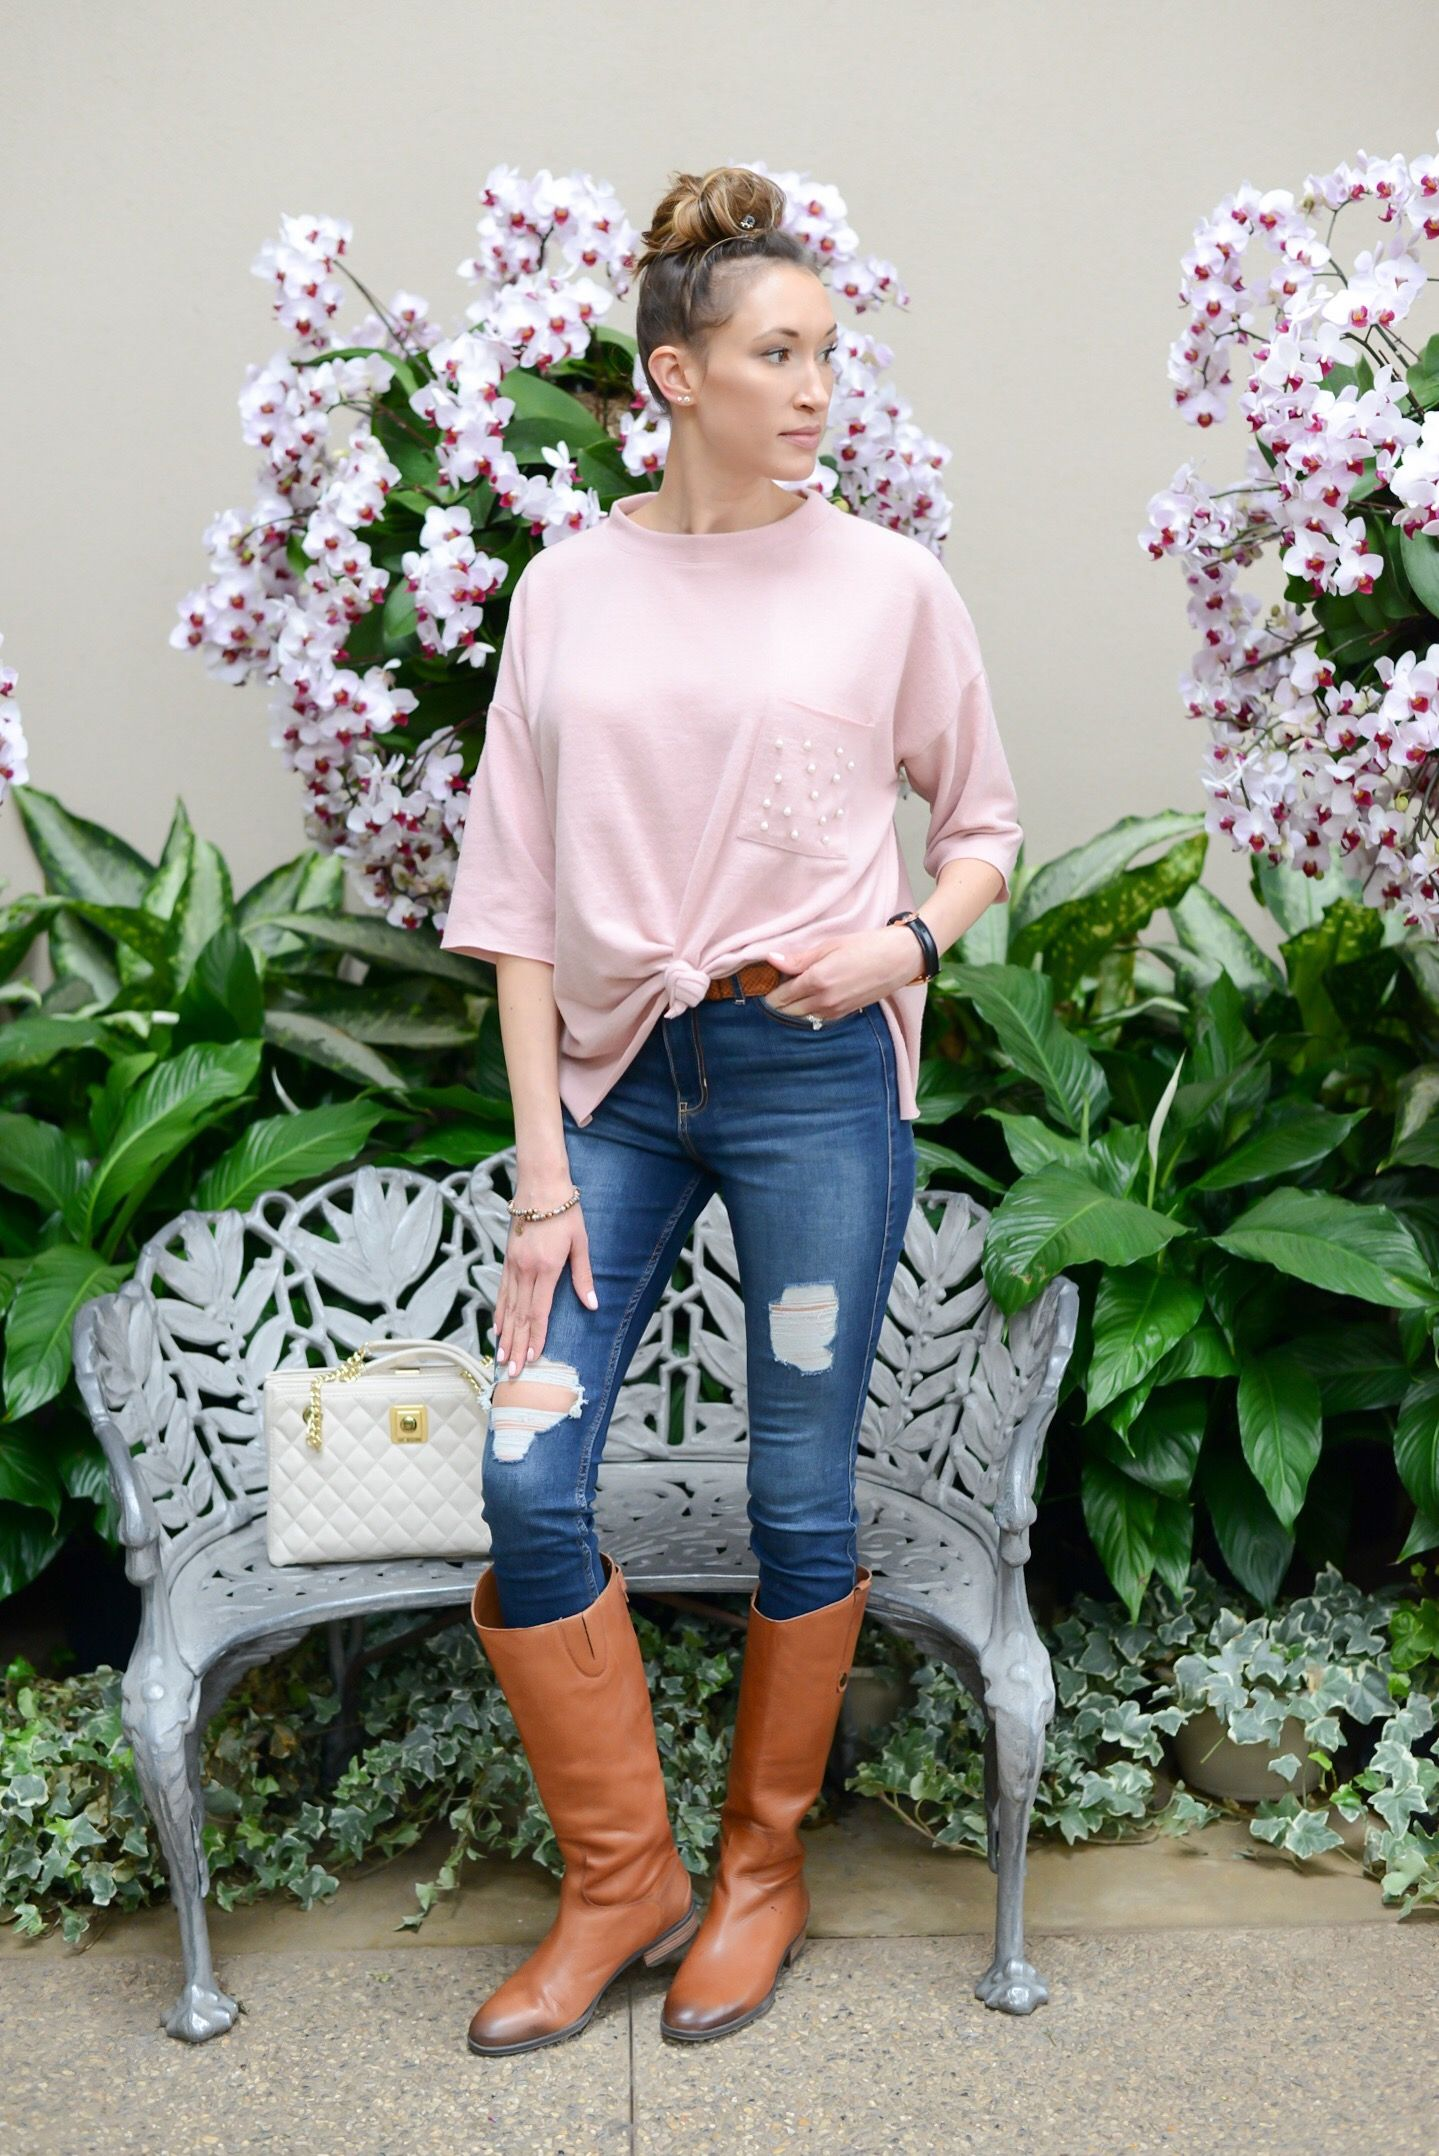 Spring Outfits You Can Wear with Tall Boots - Instinctively en